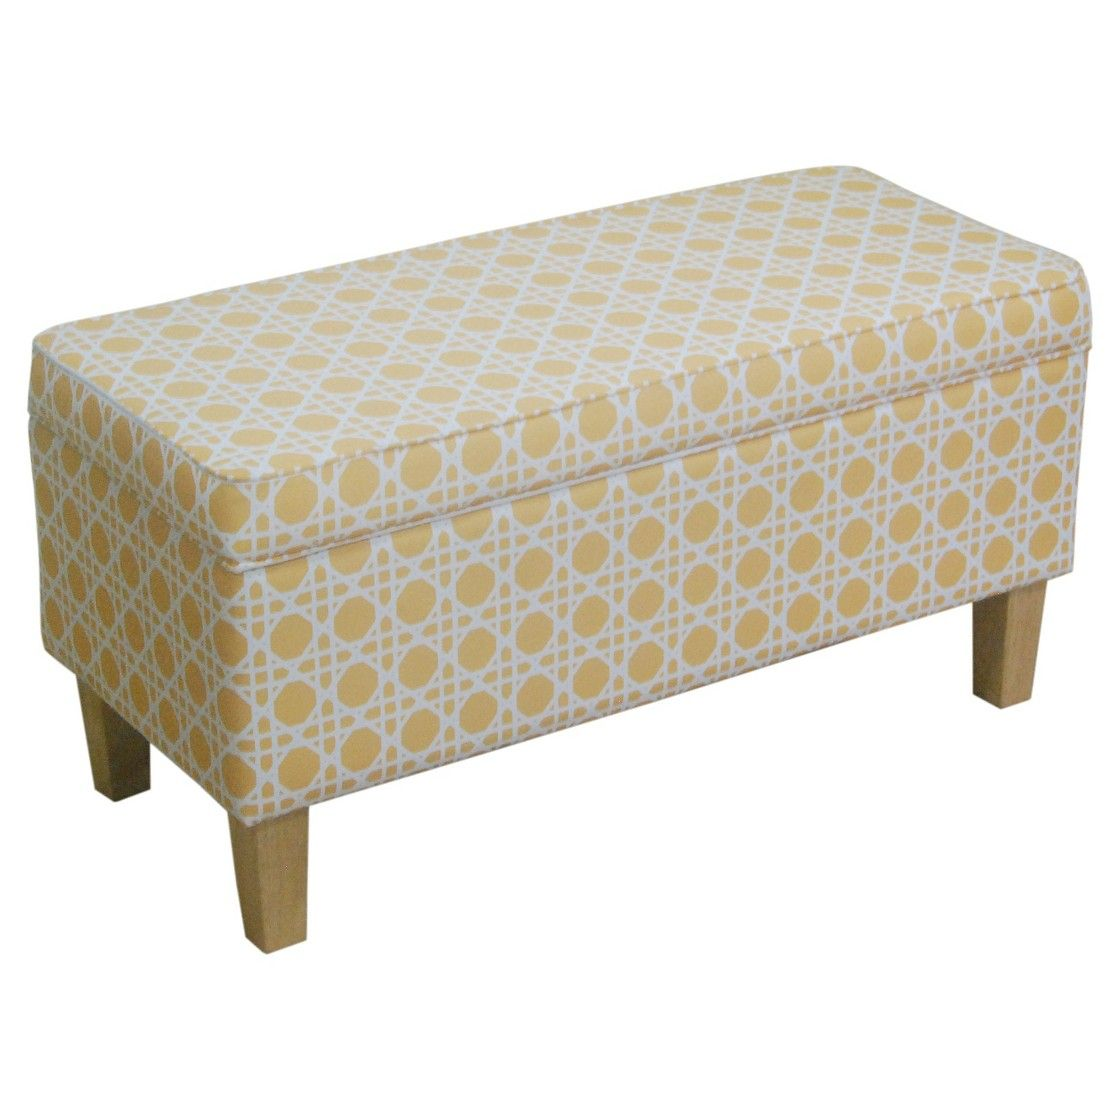 Awe Inspiring Threshold Upholstered Storage Bench Yellow Cane Print Gmtry Best Dining Table And Chair Ideas Images Gmtryco